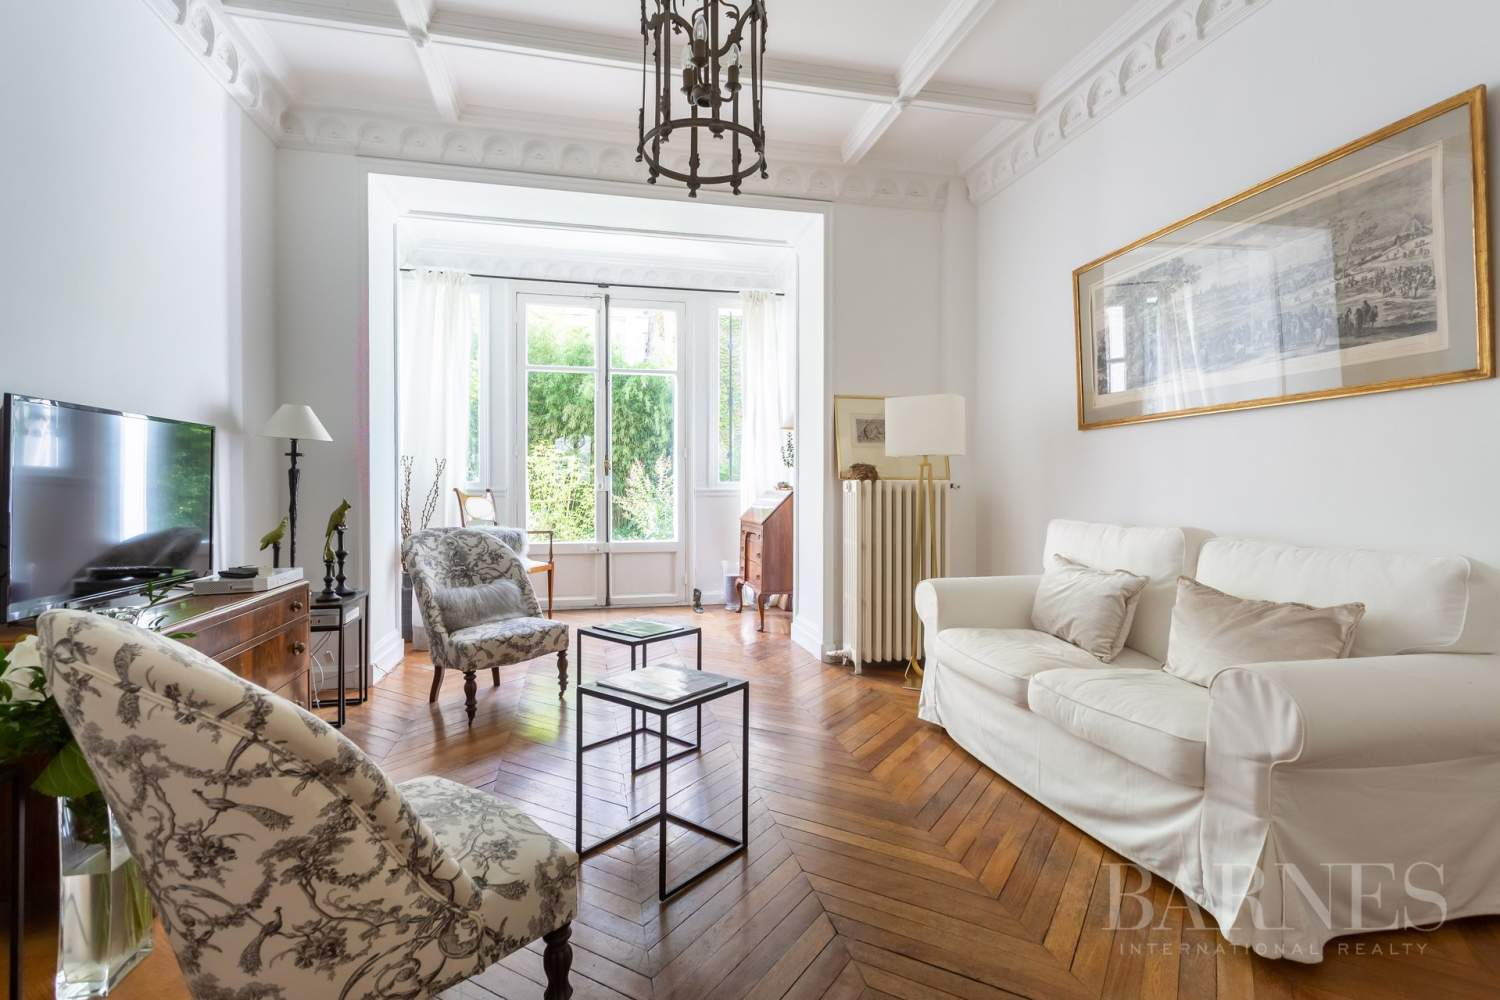 Sole Agent - Neuilly Sablons - Beautiful period parquet, mouldings, fireplace - garden picture 4